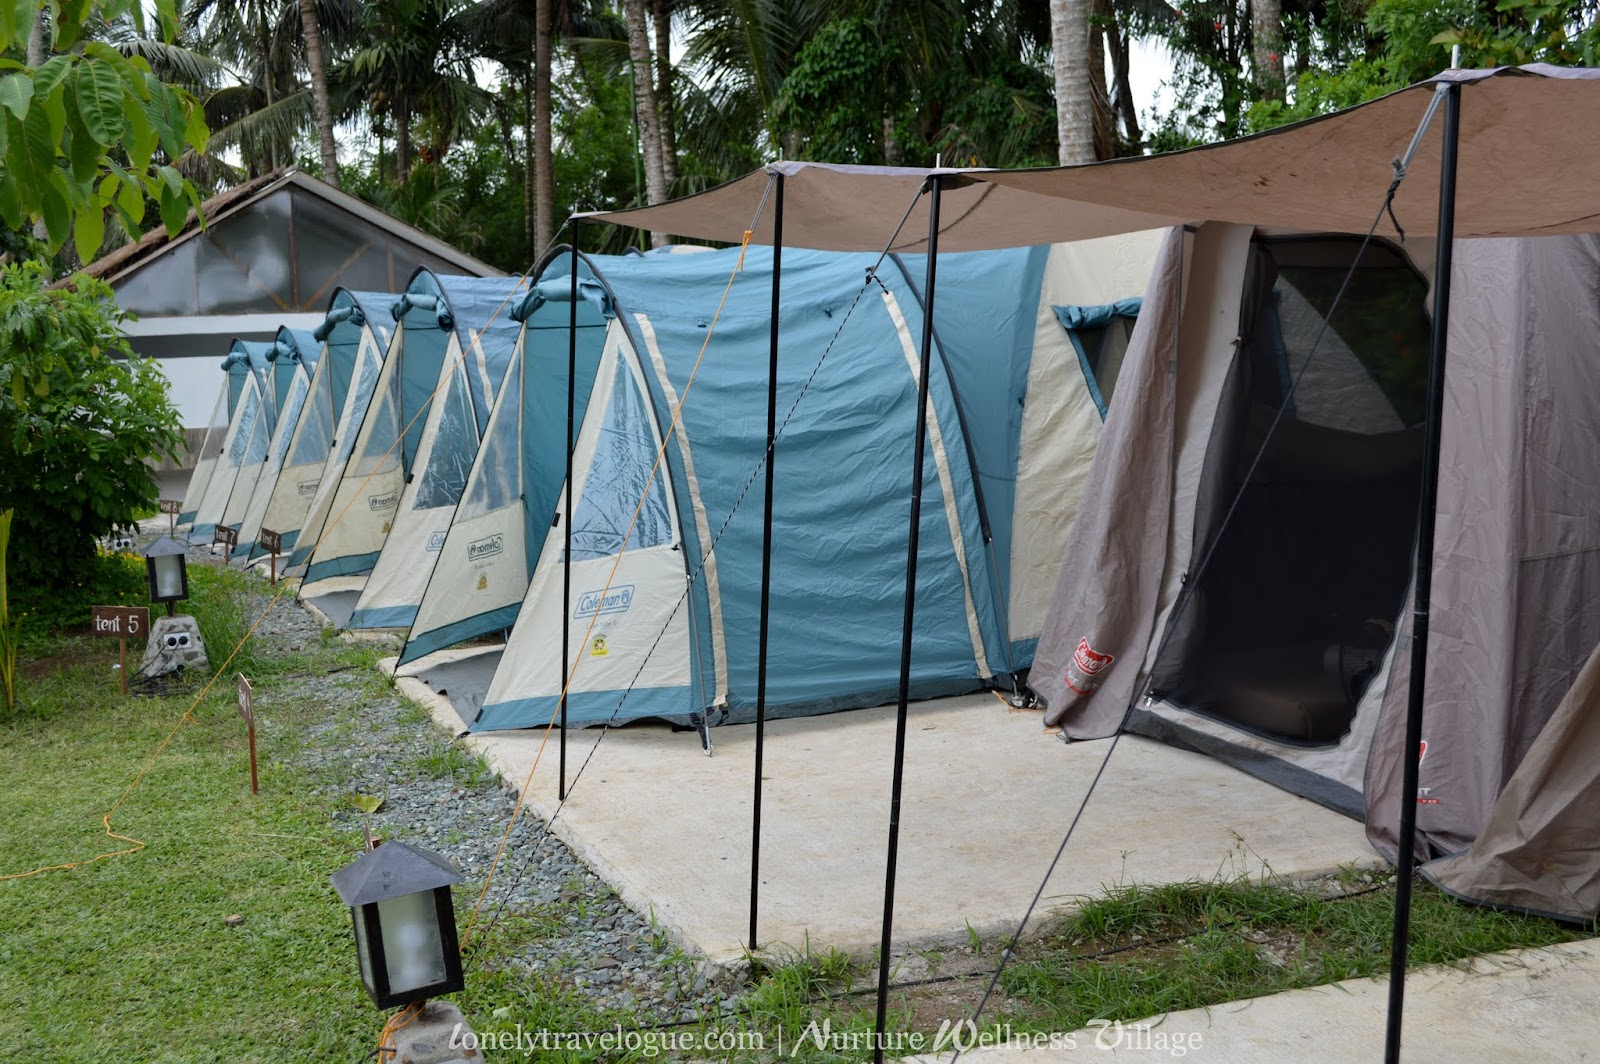 Shower and bathrooms & Lonely Travelogue: WHERE TO STAY IN TAGAYTAY: Nurture Wellness ...